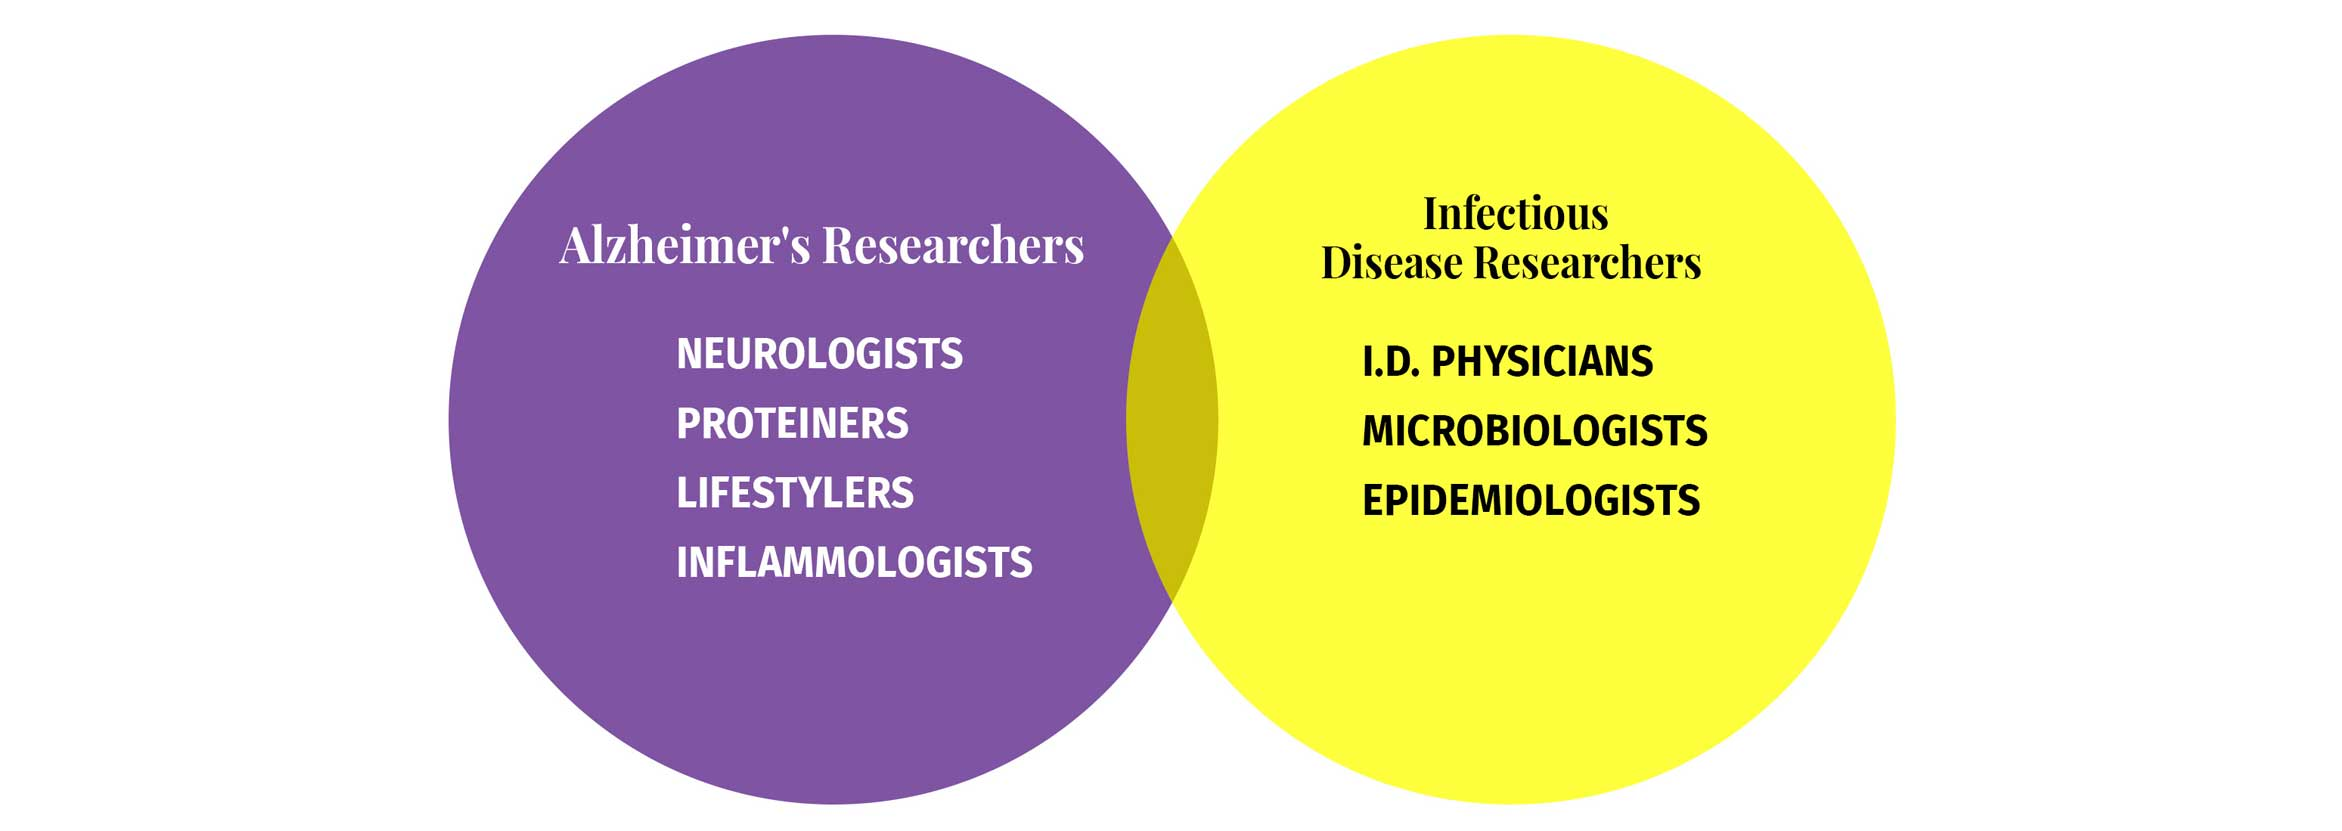 Alzheimer's Germ Quest venn diagram to depict that Alzheimer's Researchers and Infectious Disease Researchers need to work together in the Alzheimer's germ quest